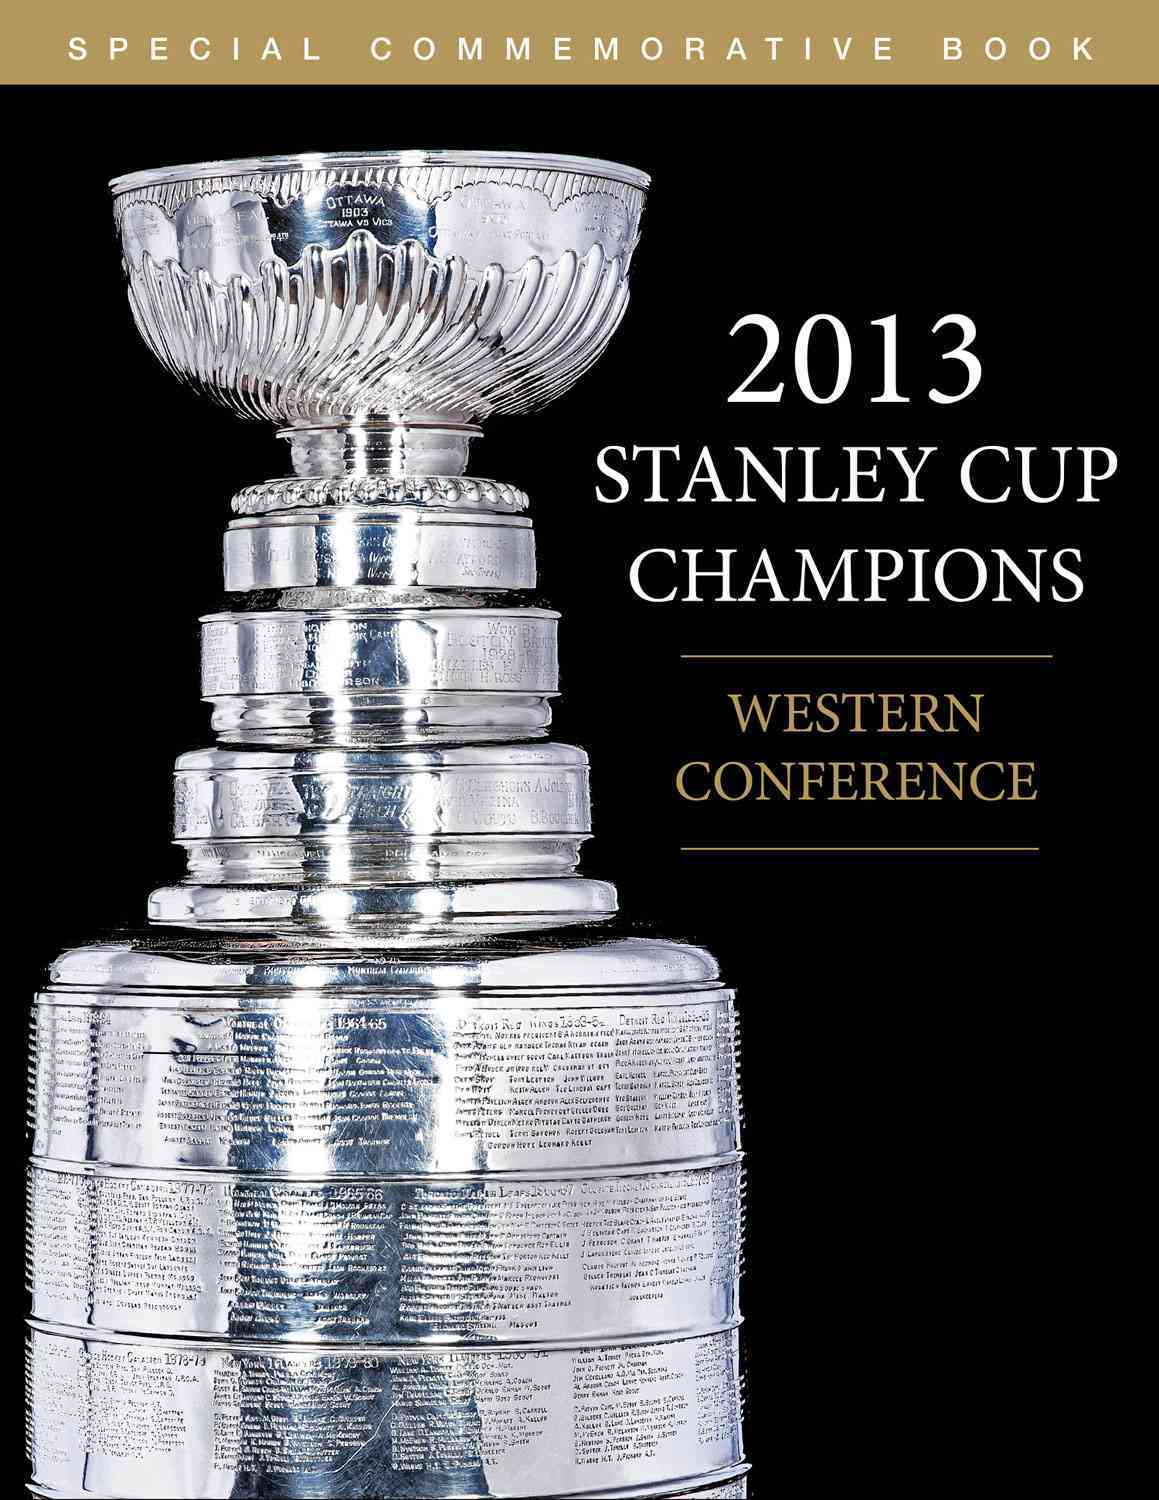 2013 Stanley Cup Champions (Western Conference) By Triumph Books